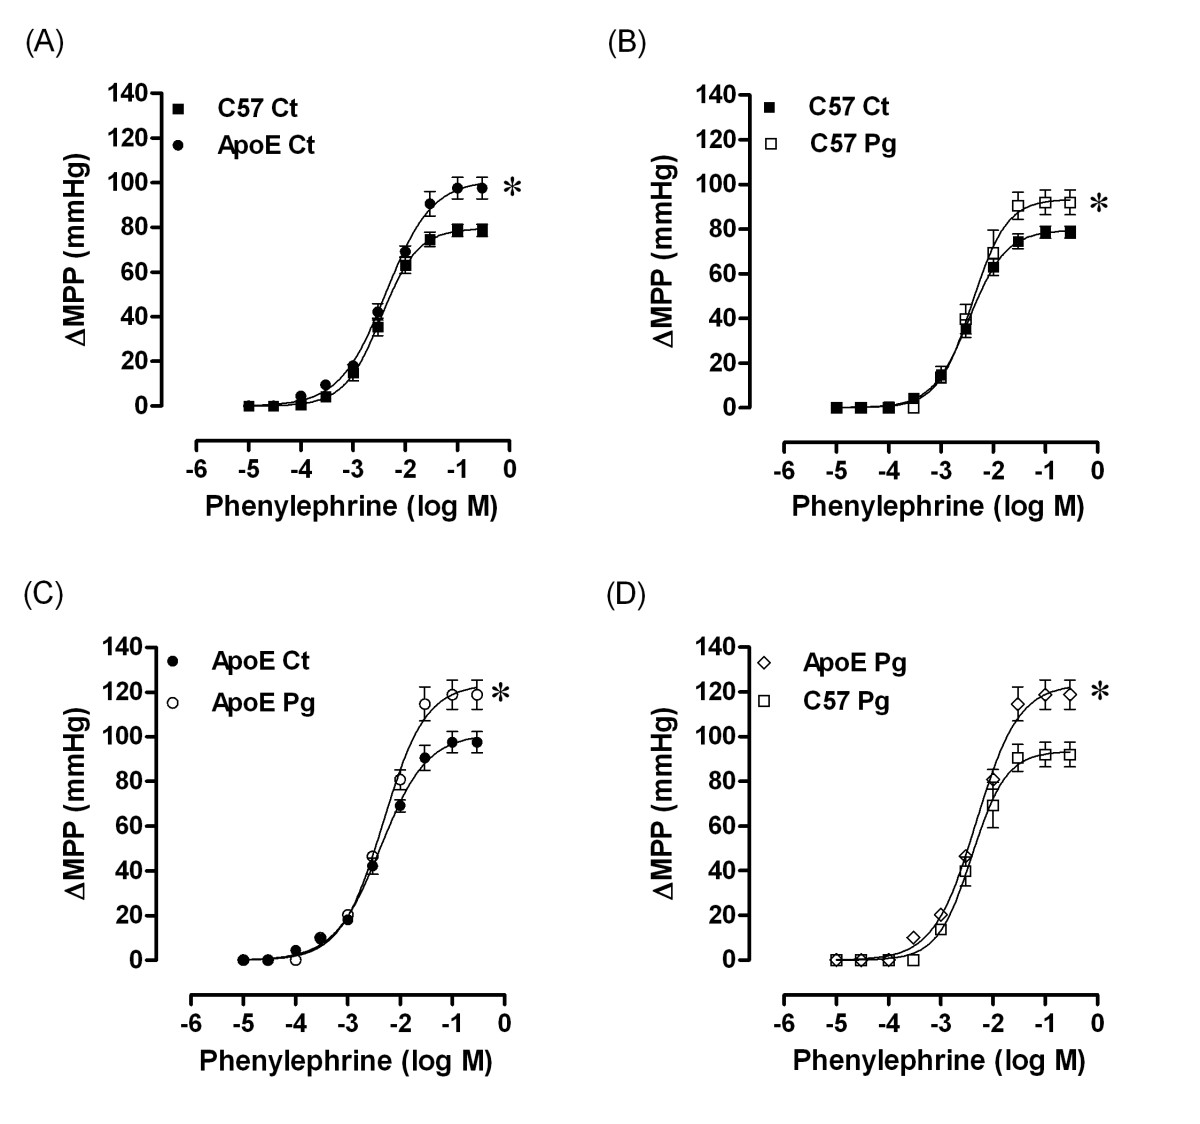 https://static-content.springer.com/image/art%3A10.1186%2F1476-511X-10-80/MediaObjects/12944_2011_Article_476_Fig4_HTML.jpg